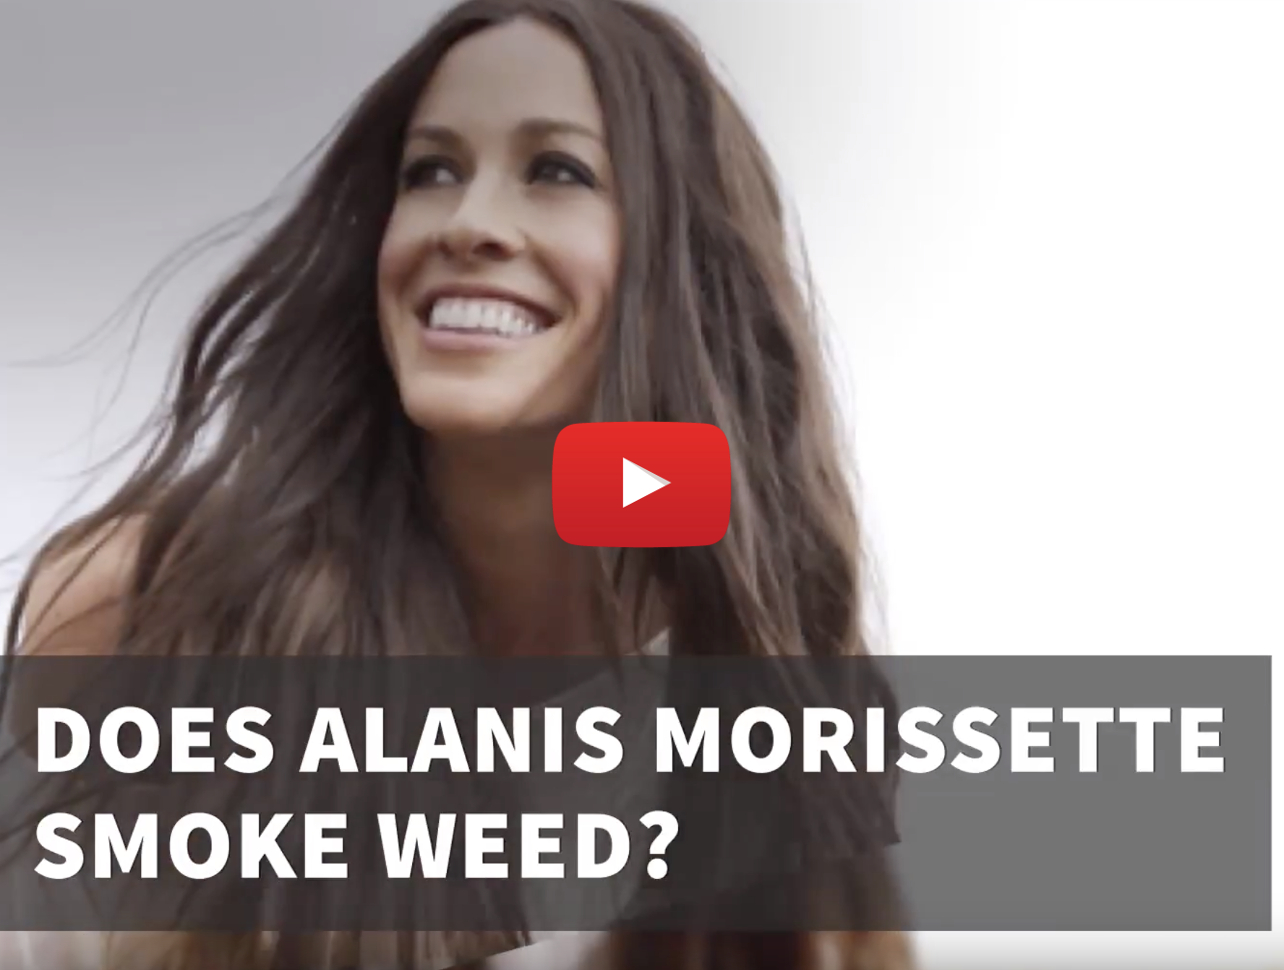 does alanis morissette smoke weed video1 - Does Alanis Morissette smoke weed? You Oughta Know!